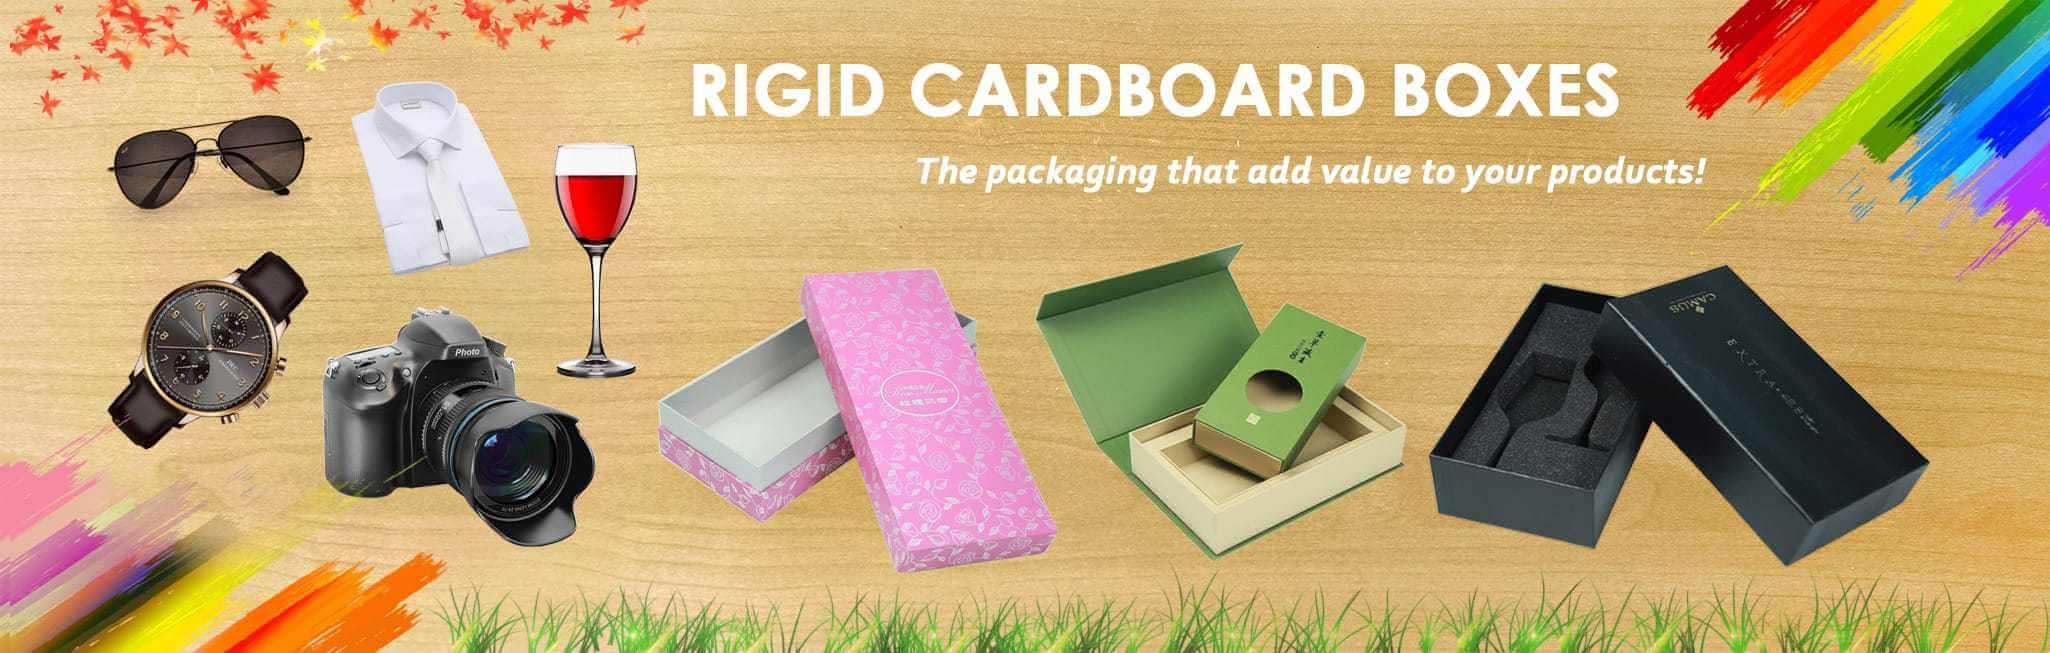 Rigid cardboard boxes